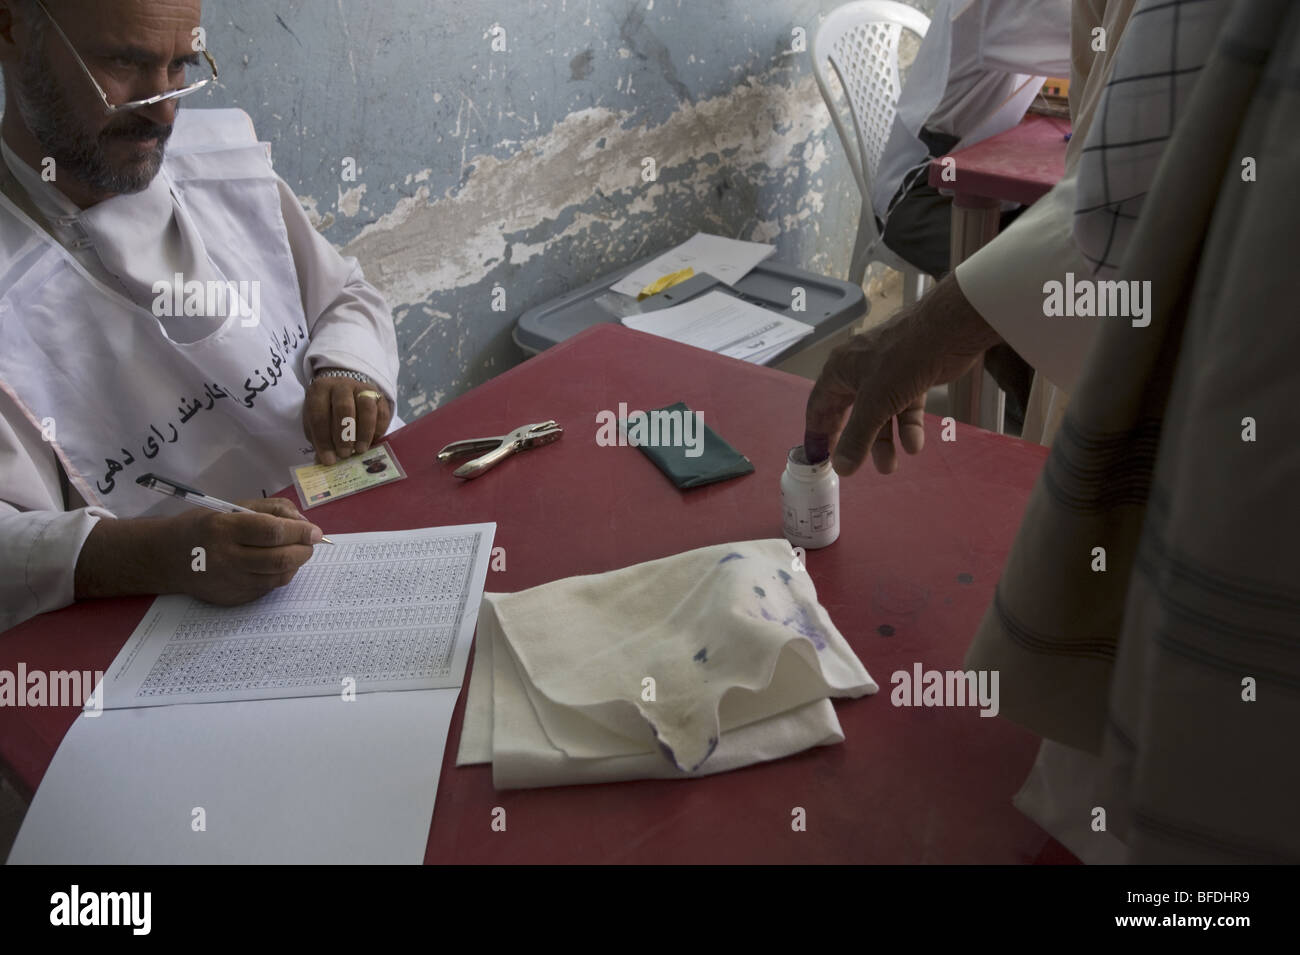 Scenes from voting on the day of presidential and provincial elections in Mazar-i Sharif, Afghanistan. - Stock Image